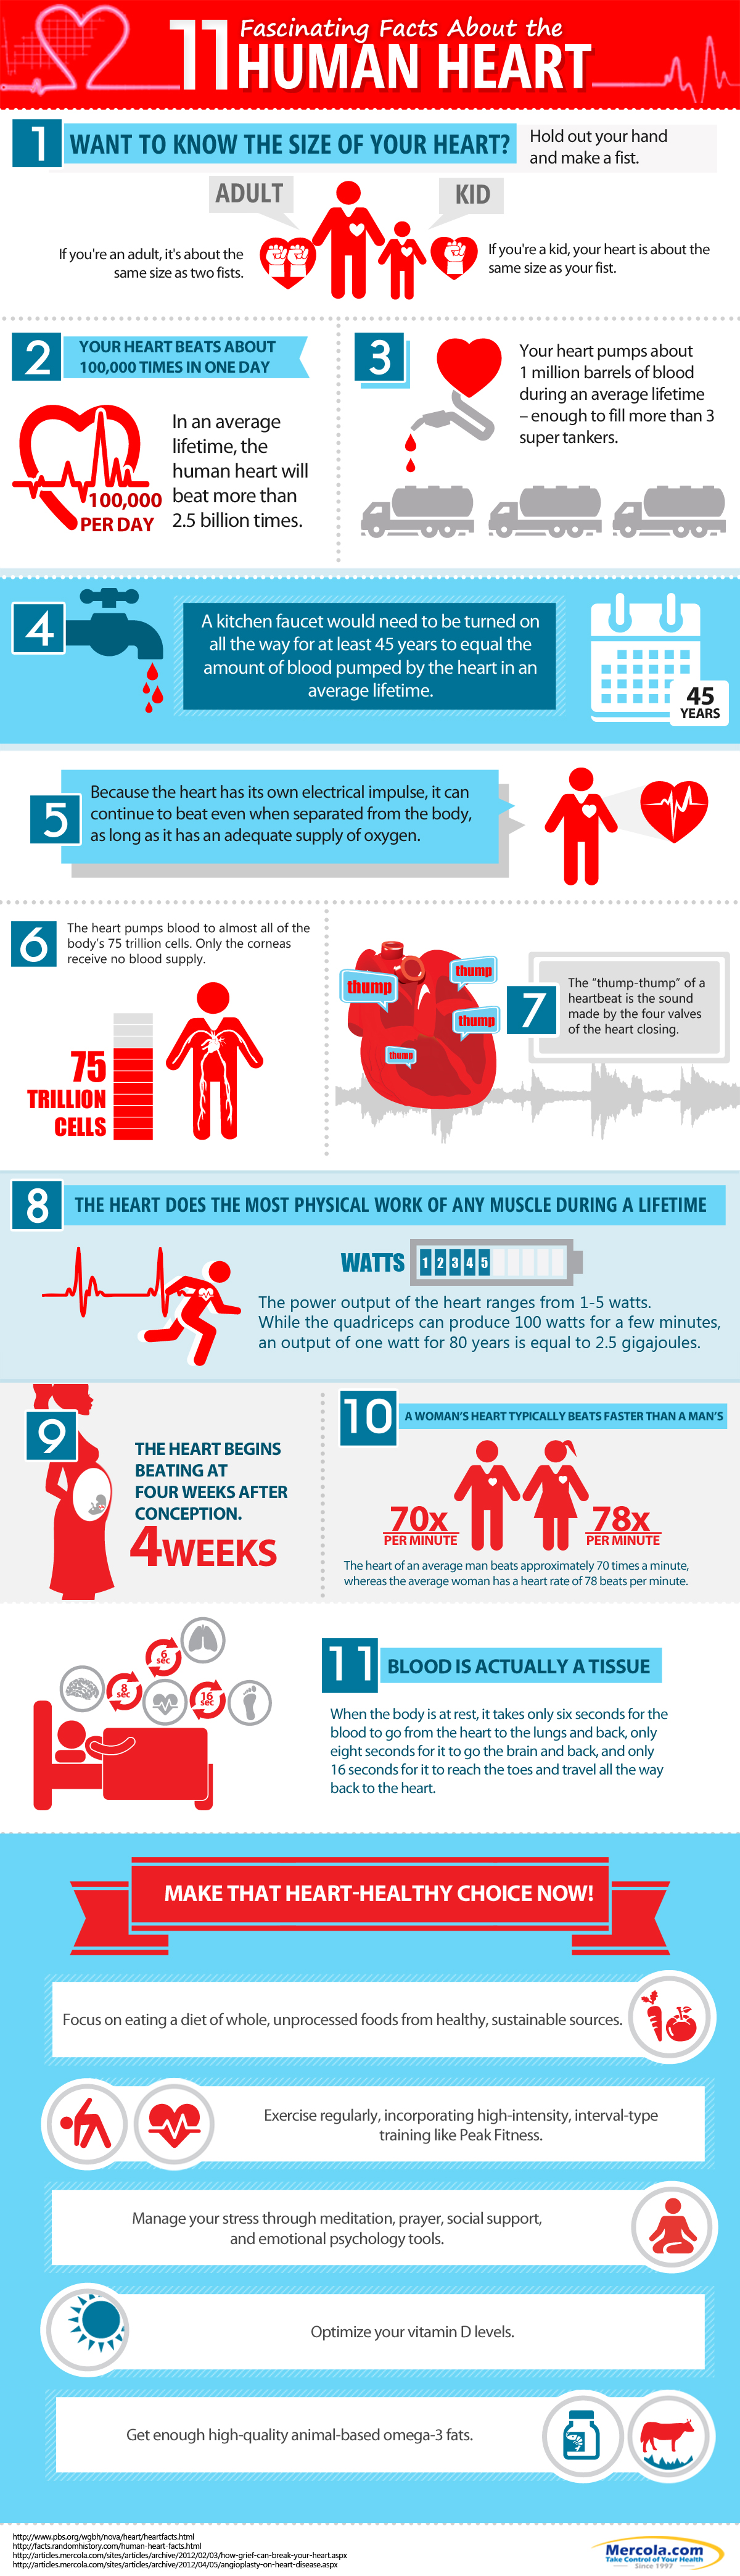 11 Fascinating Facts About The Human Heart Infographic